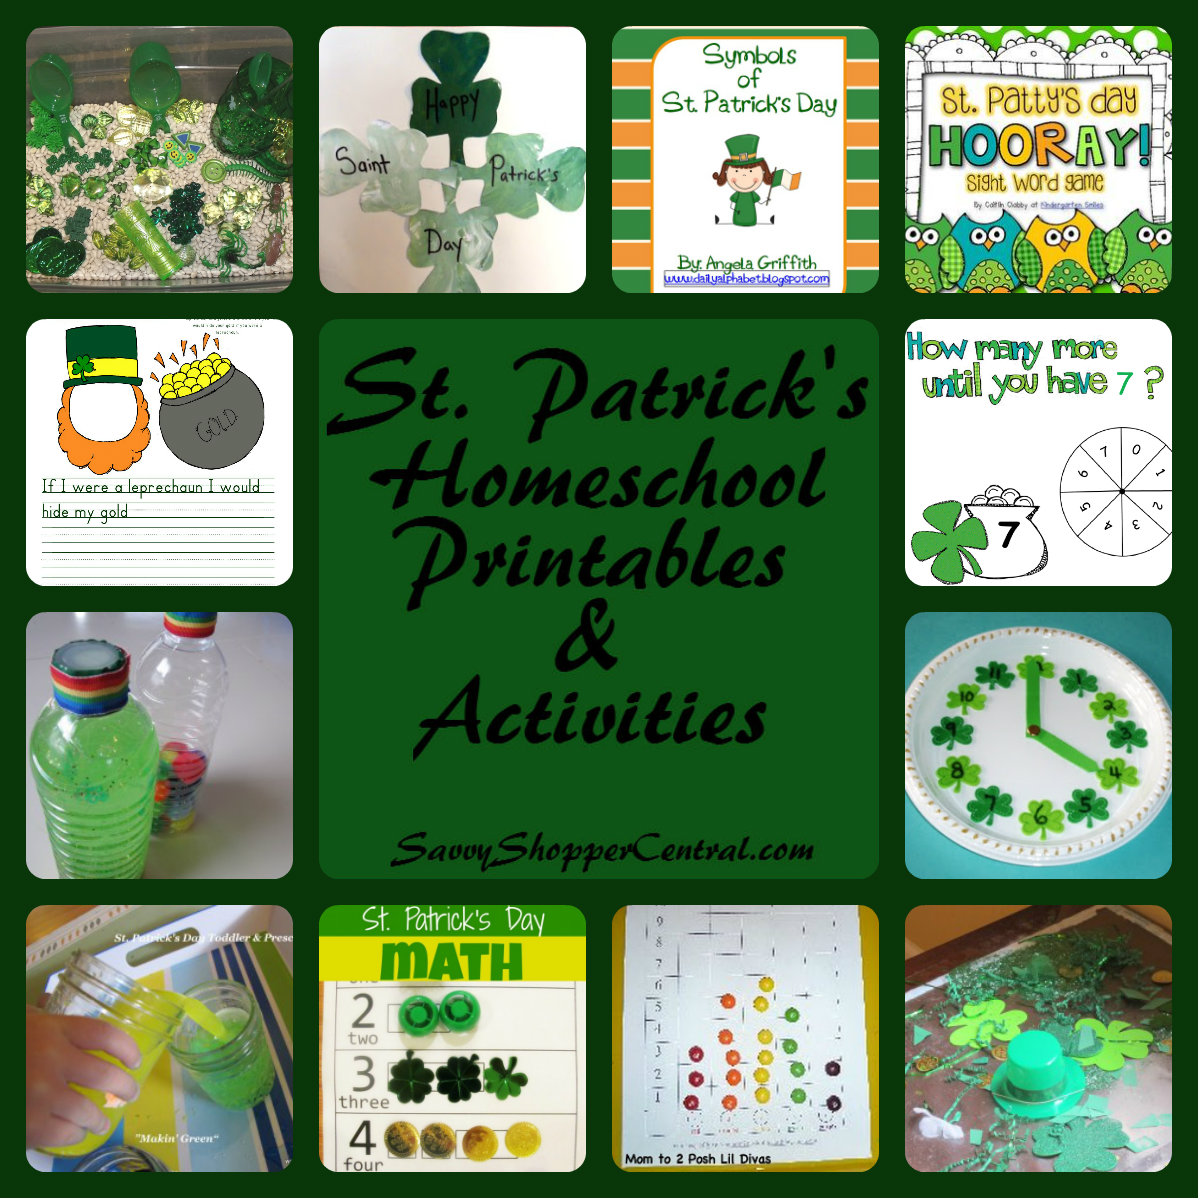 St Patrick's Day Homeschool Printables & Activities